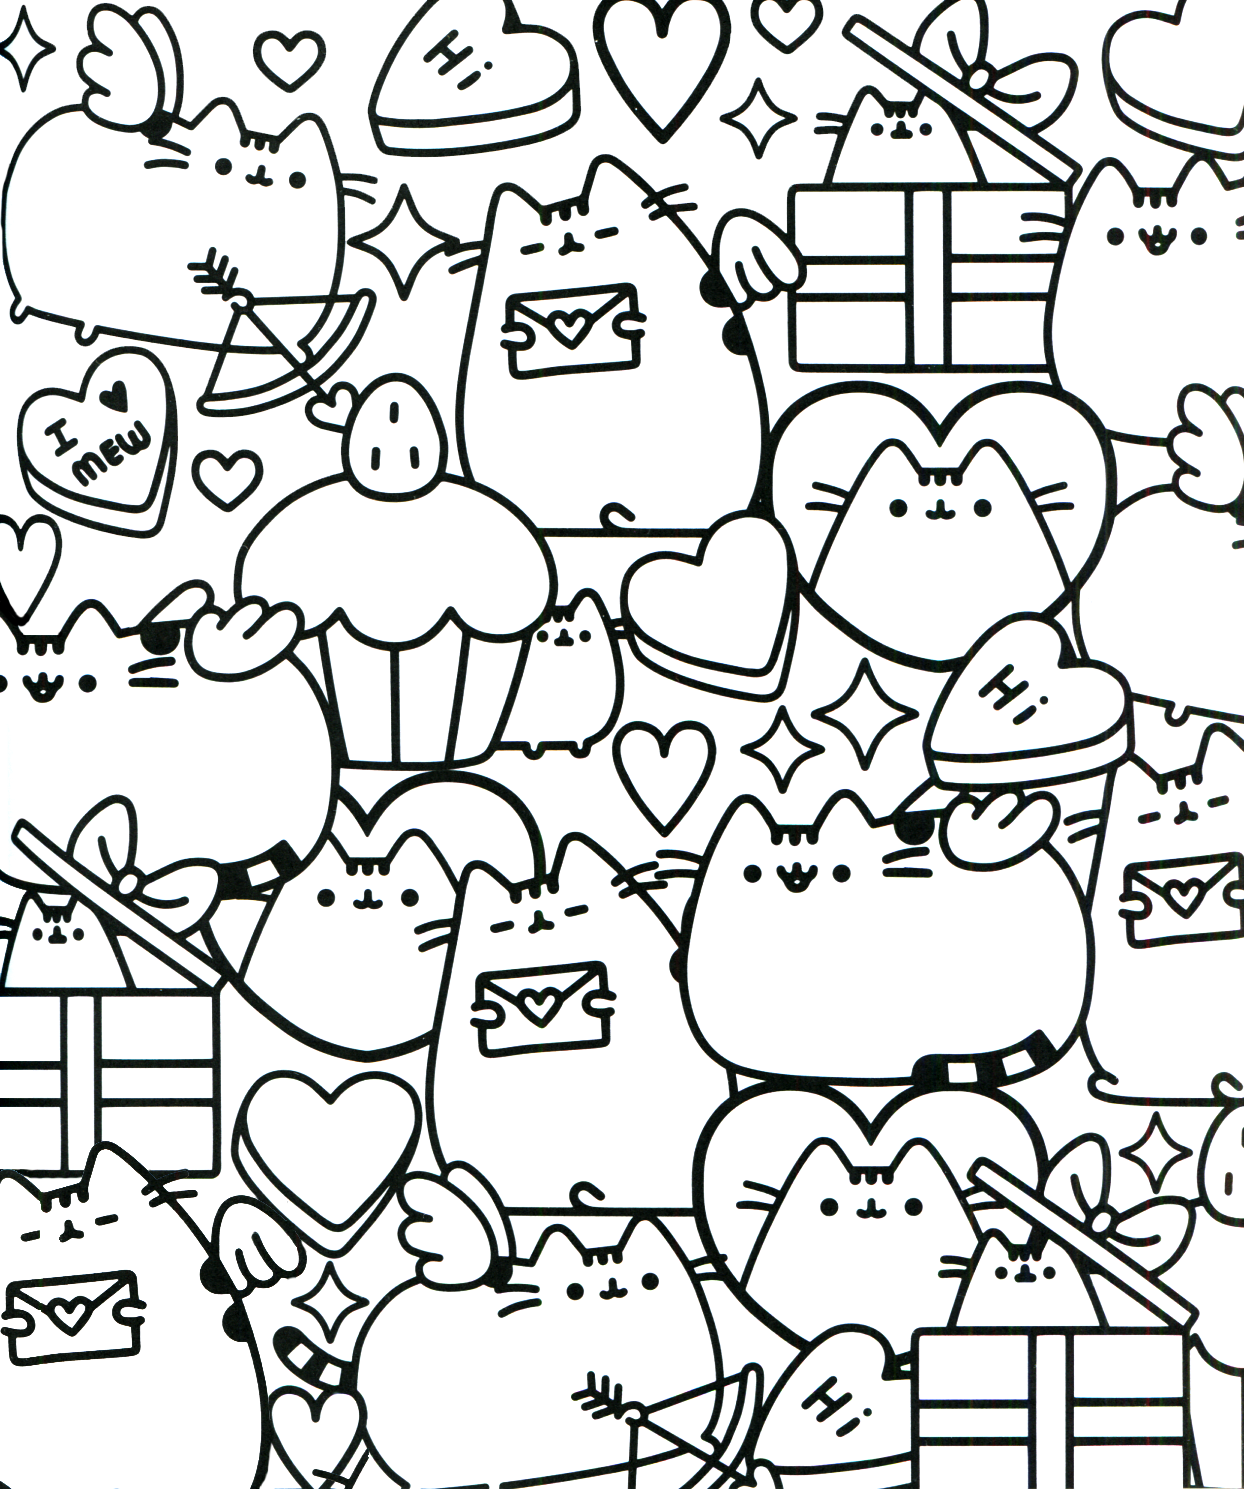 Pusheen Coloring Book Pusheen Pusheen the Cat | Pusheen ...